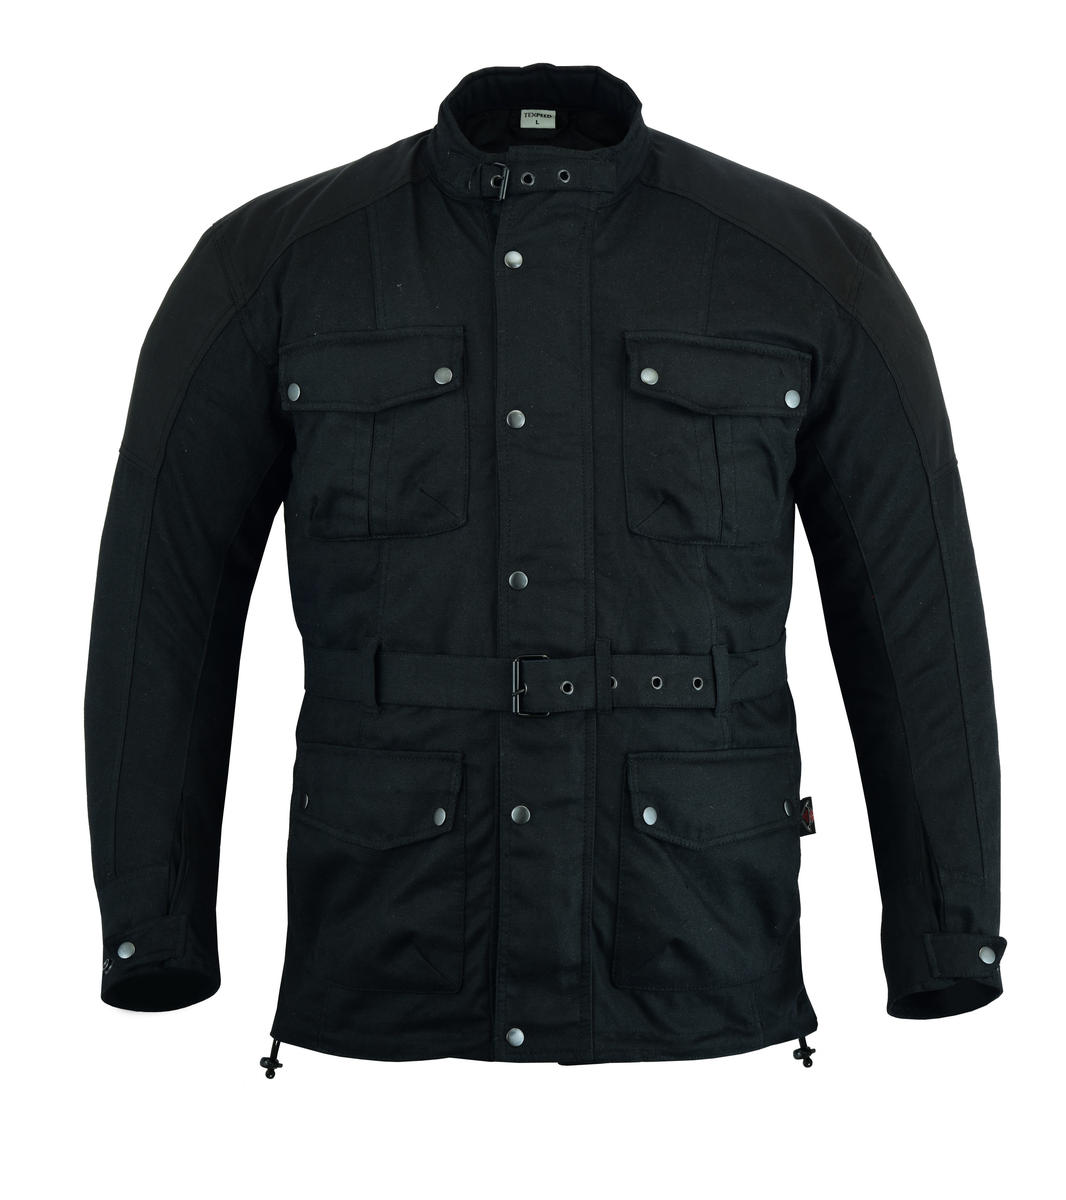 Texpeed Cordura & Wax Coated Black Motorcycle Jacket